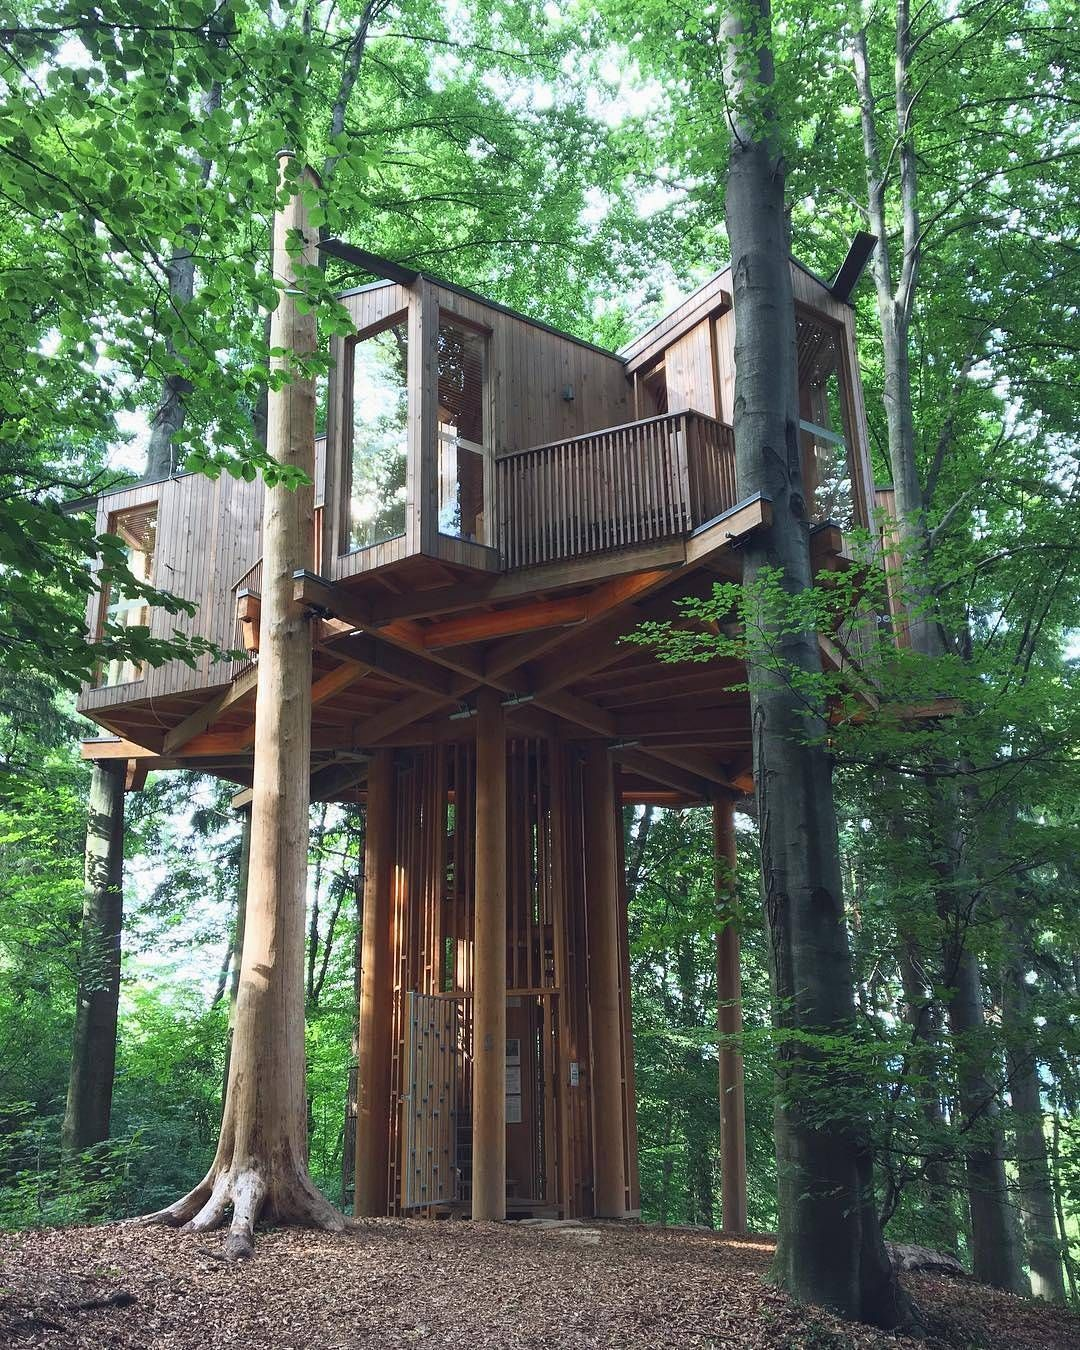 The Largest Tree House In Slovenia Is Located In Celje City Forest Impressive Right Tree House Slovenia Pergola